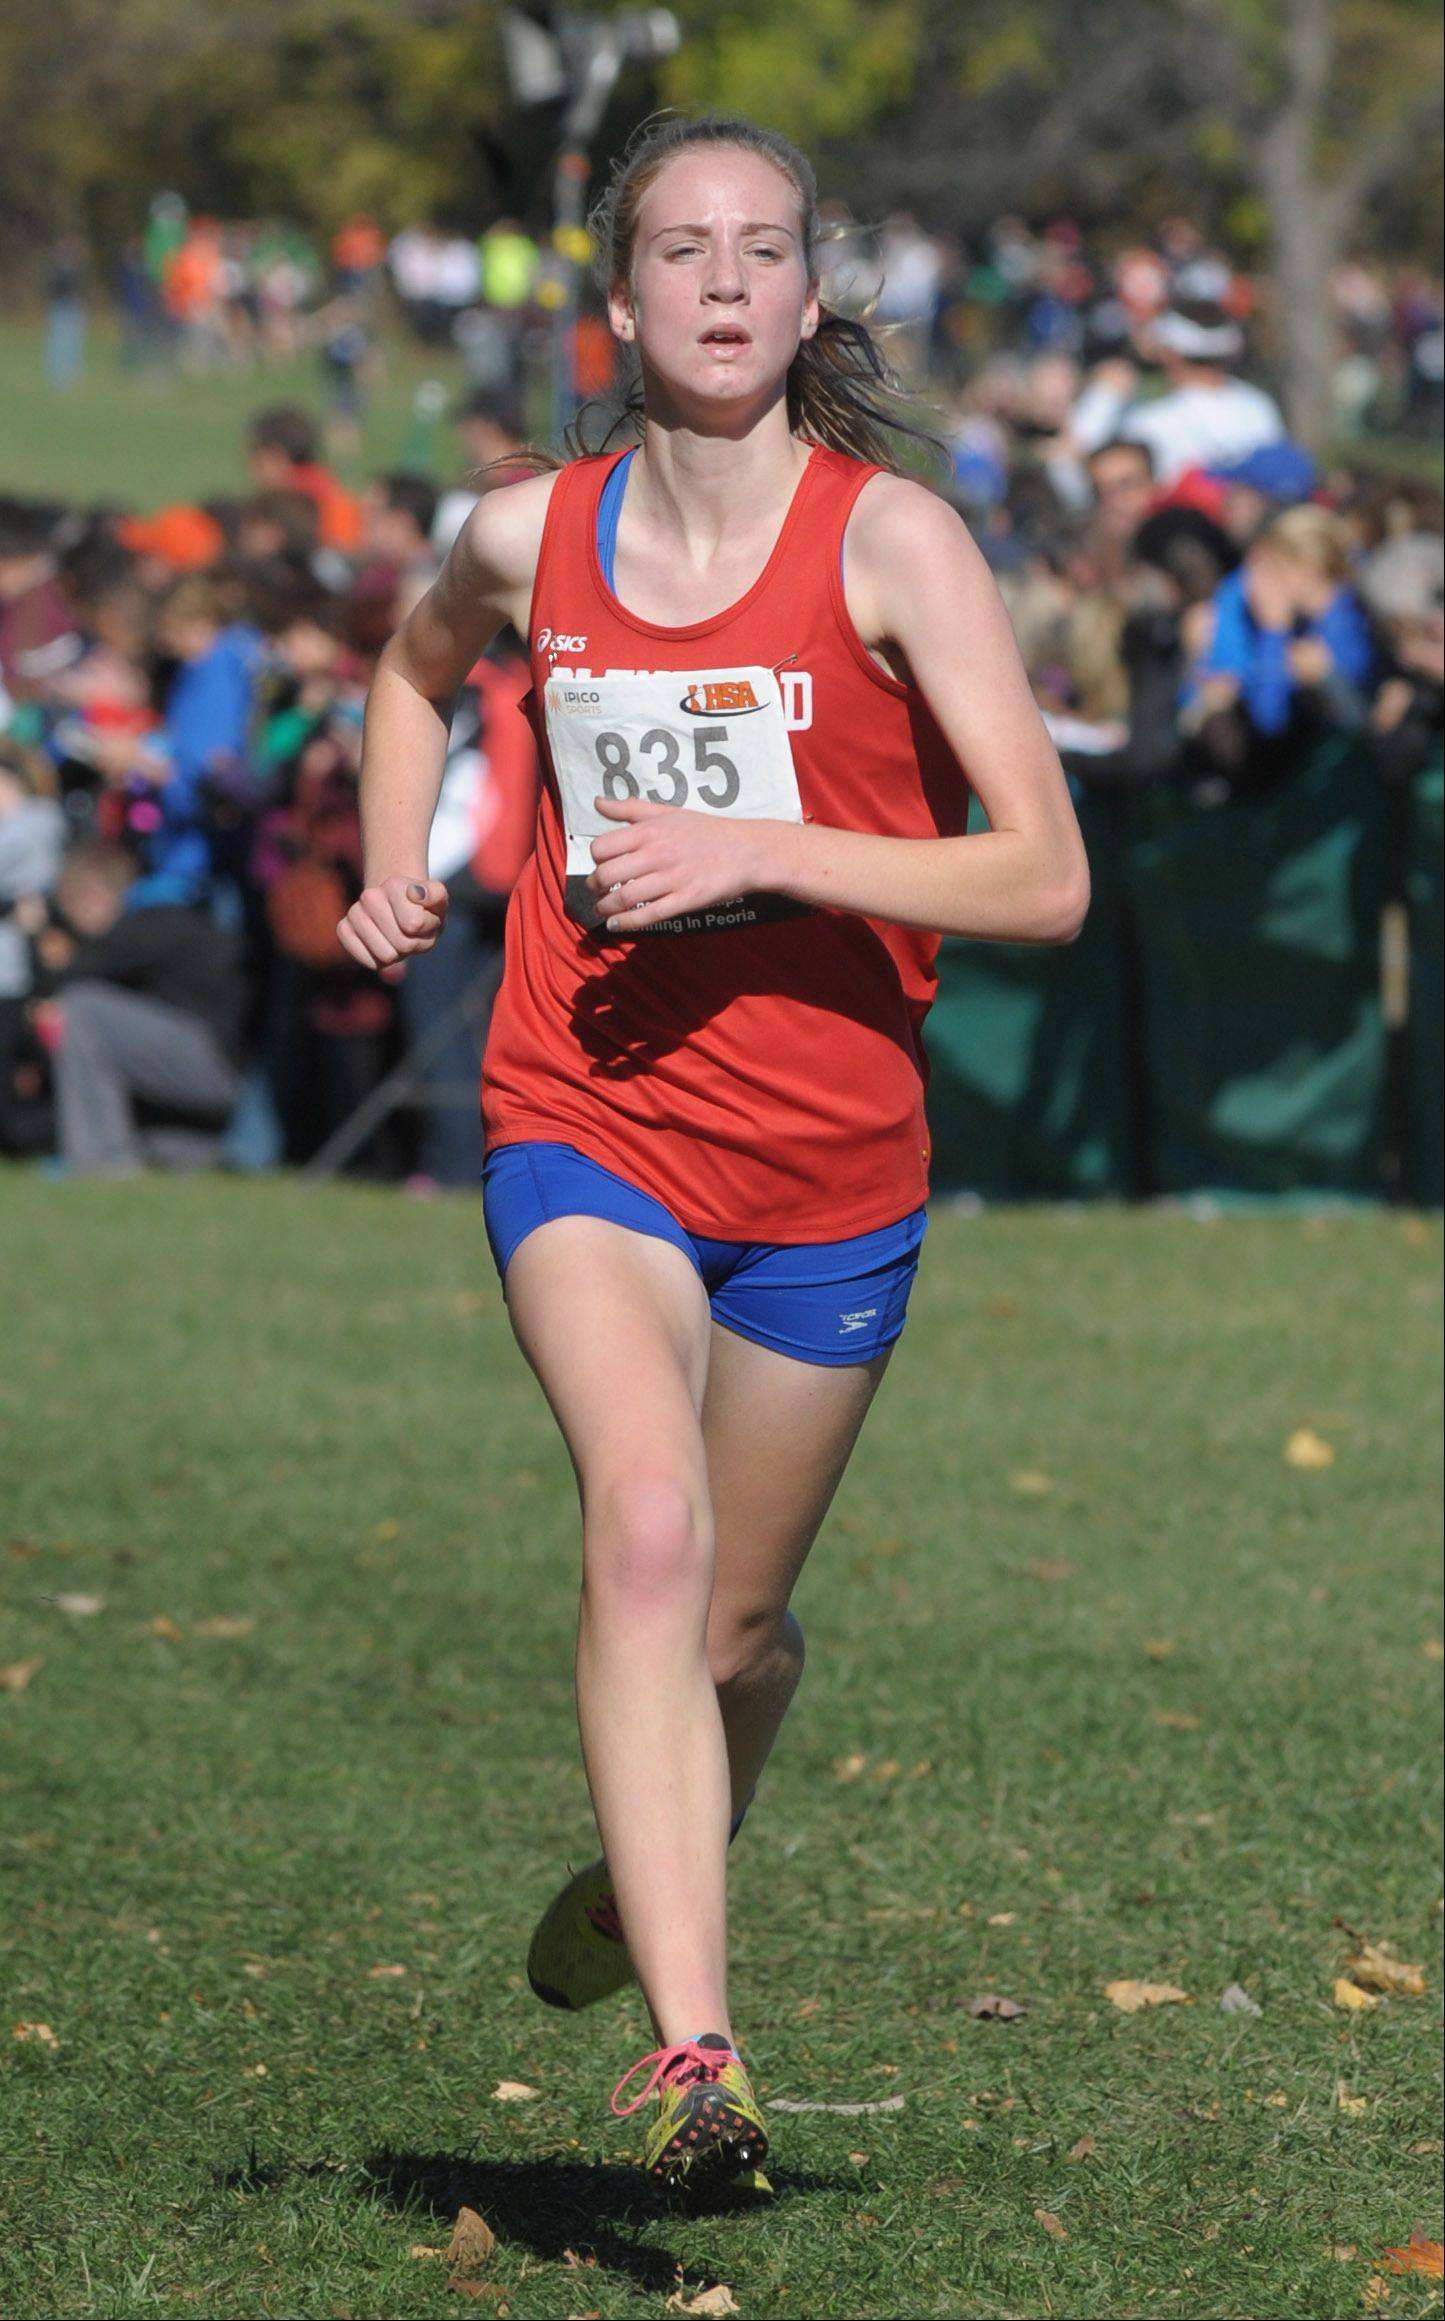 Glenbard South's Diane Lipa approaches the finish line to take third place in the Class 2A IHSA cross country state final at Detweiller Park in Peoria on Saturday, November 9.